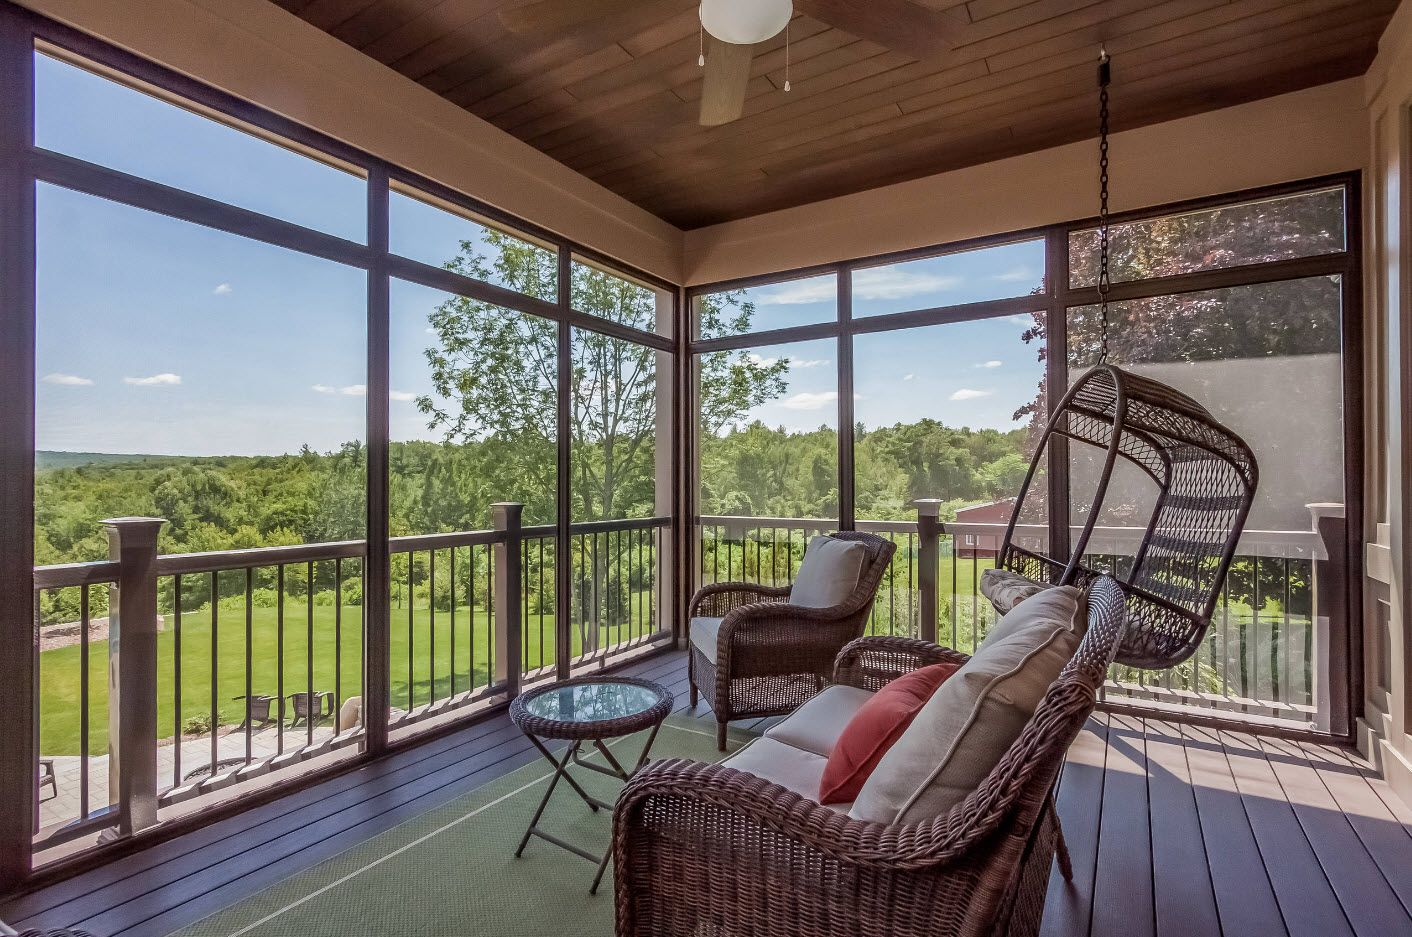 Country House Porch Decoration & Design Ideas. Patio at the high platforn with handrails